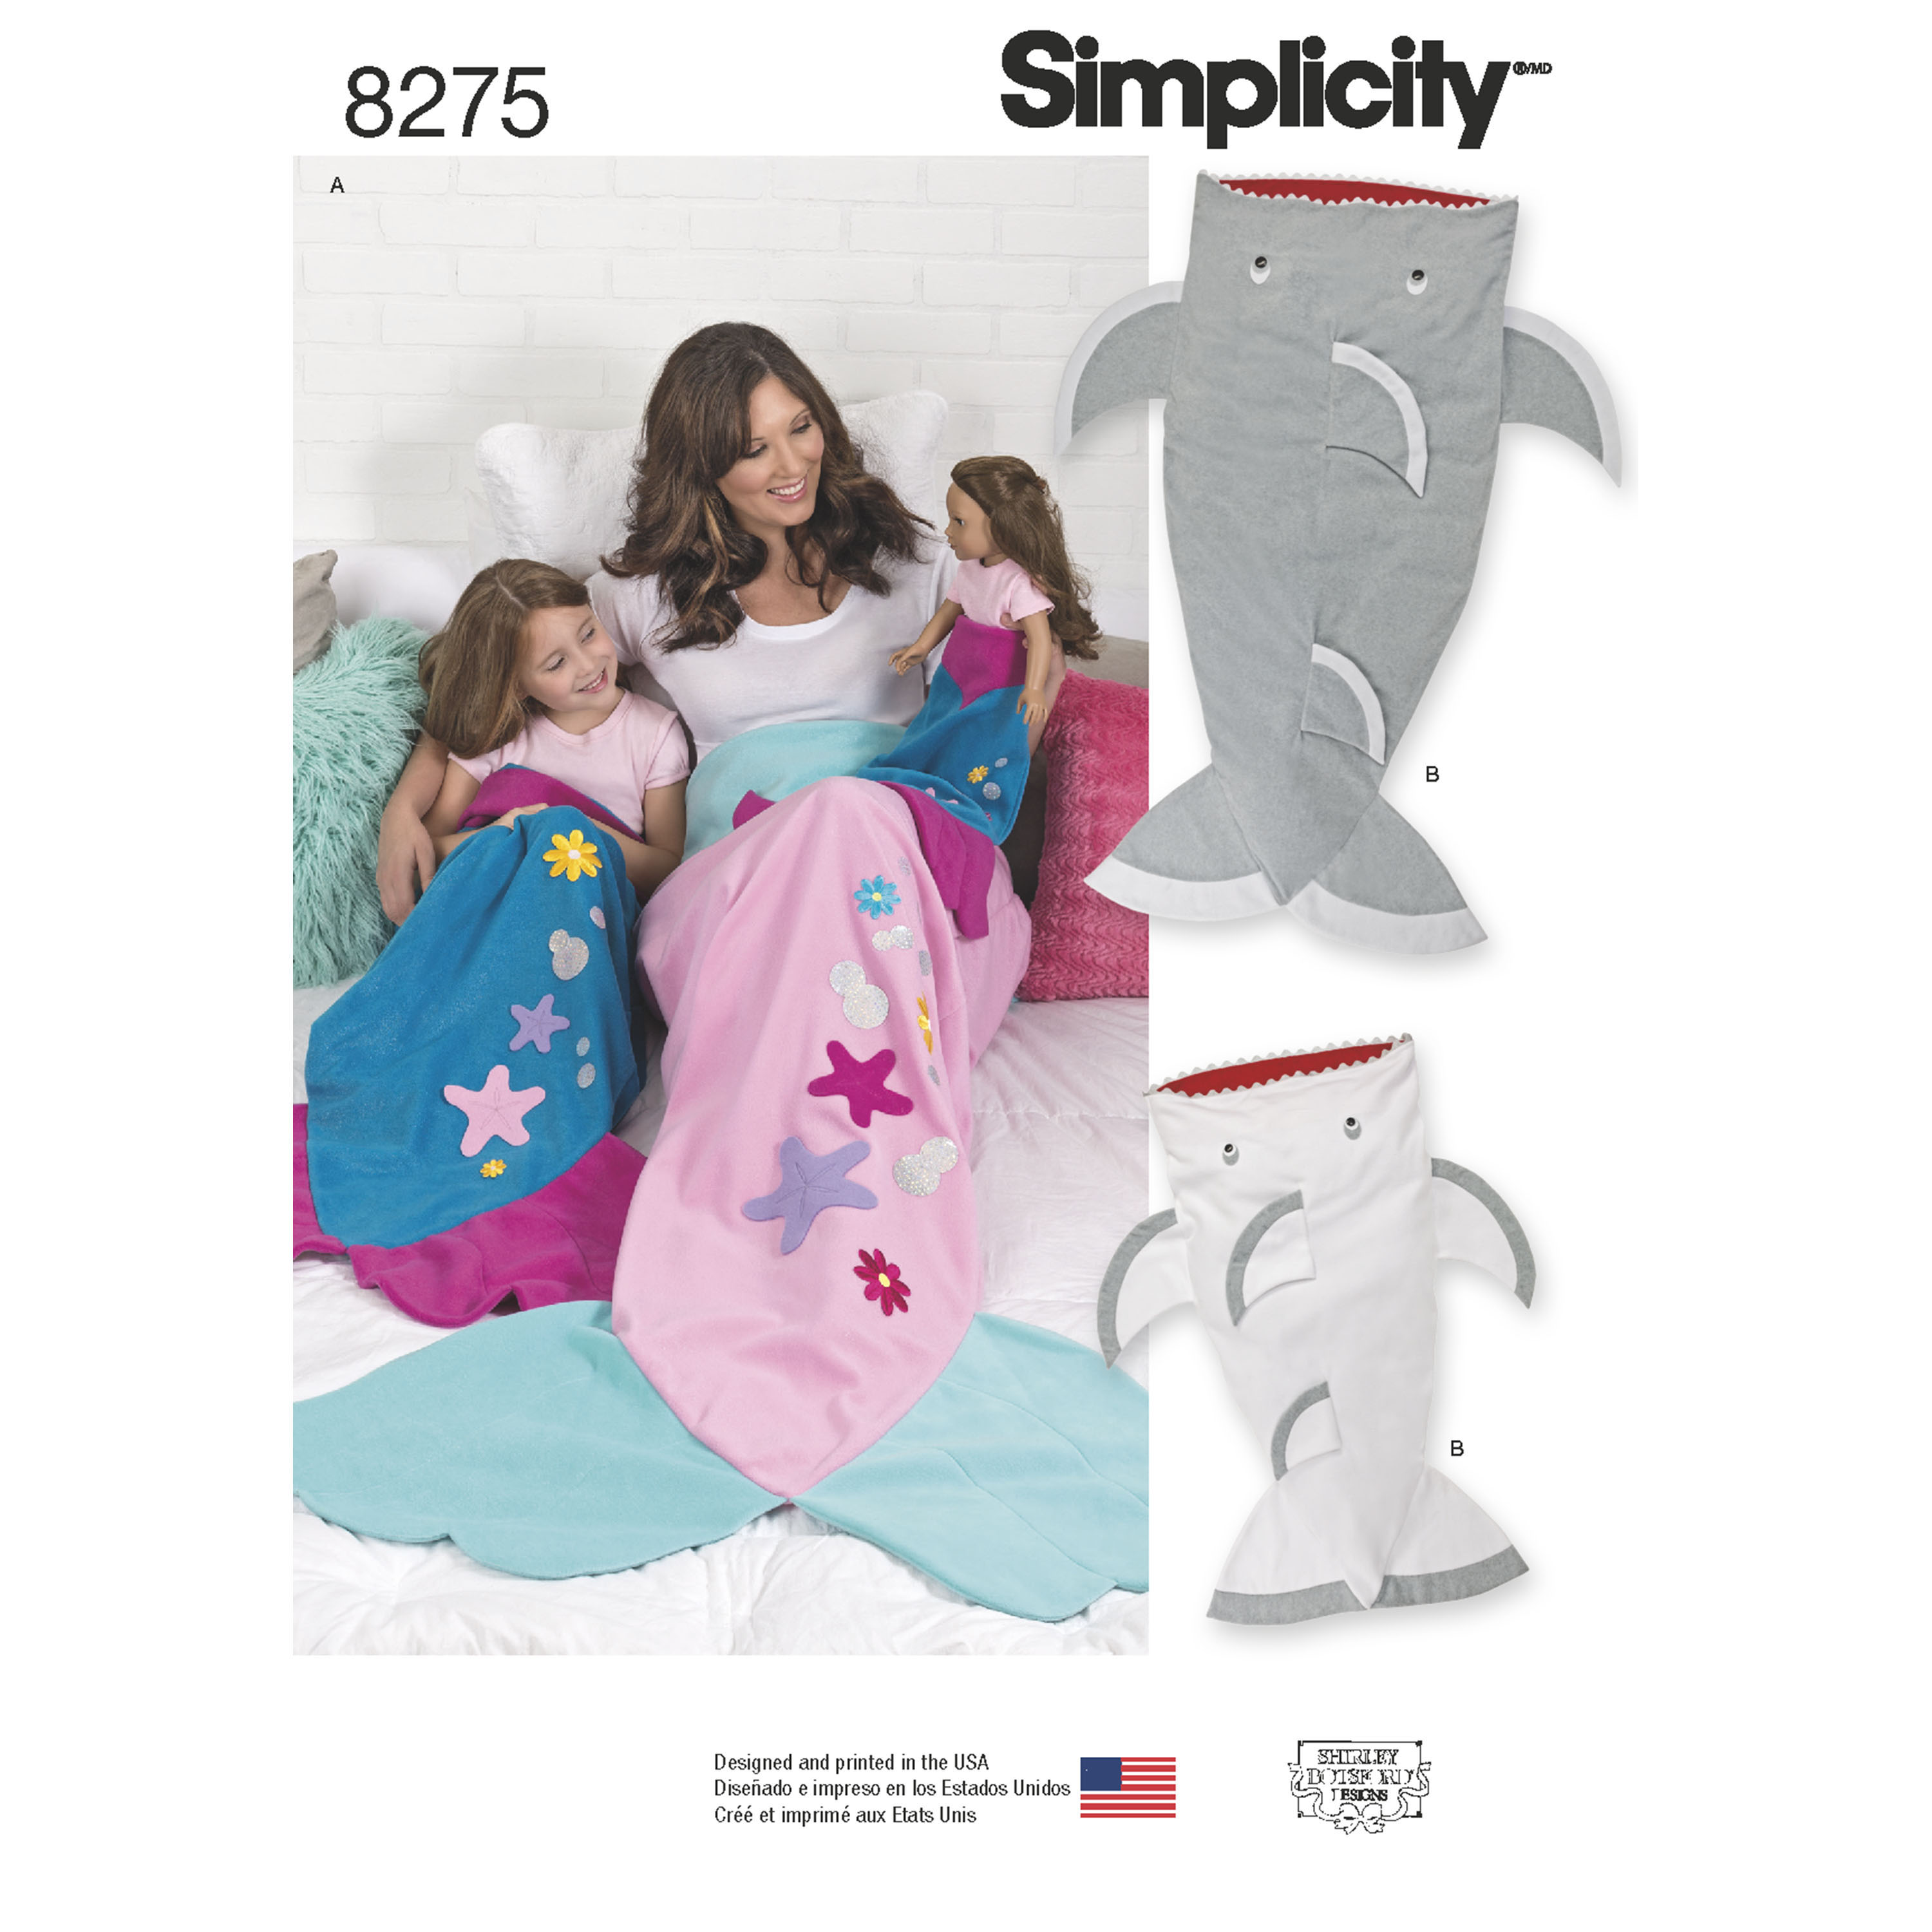 0f53beabe4 Simplicity Simplicity Pattern 8275 Novelty Blankets for Child